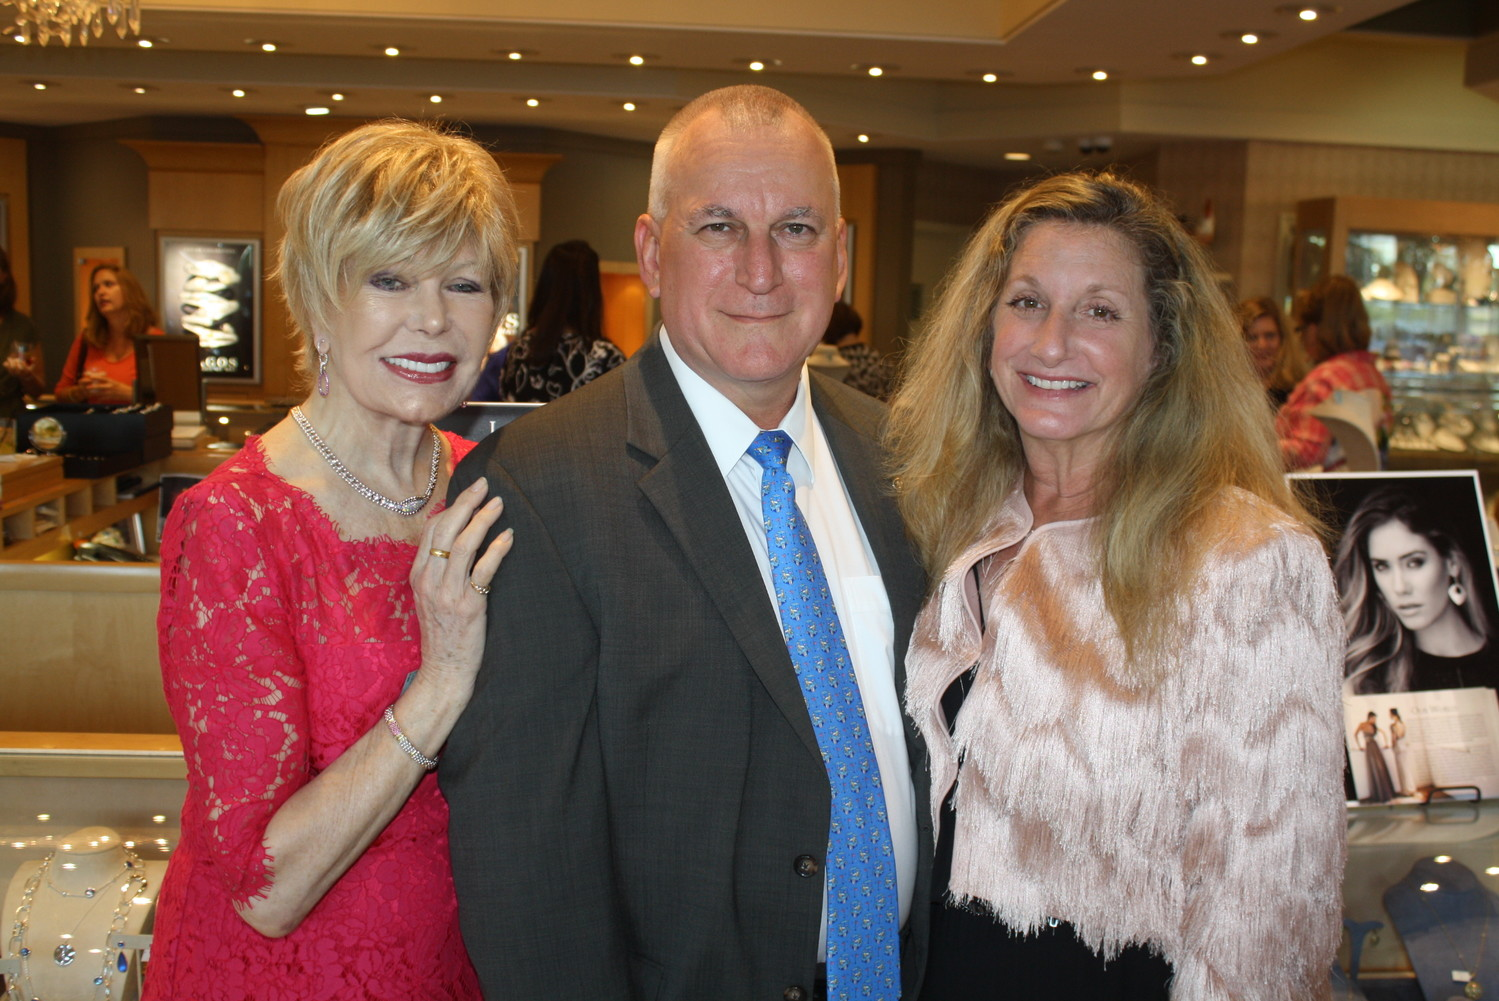 Actress, artist and animal advocate Loretta Swit, Underwood's Jewelers General Manager John Rutkowski and Ayla's Acres Executive Director Fran Charlson